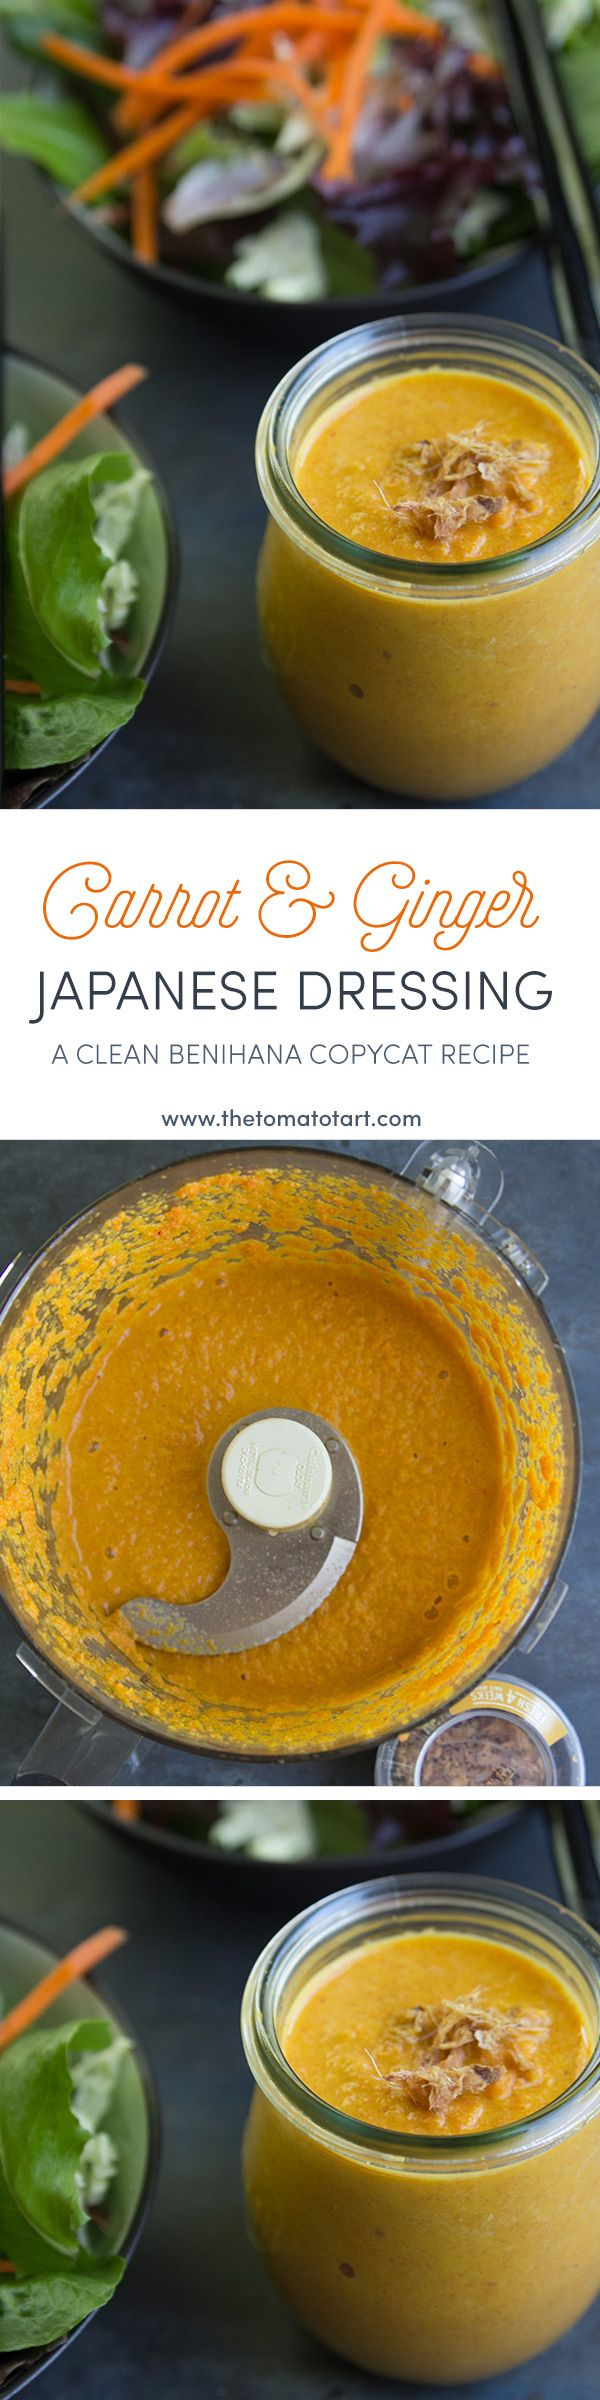 Carrot Ginger Salad Dressing Pin from The Tomato Tart @thetomatotart http://www.thetomatotart.stfi.re